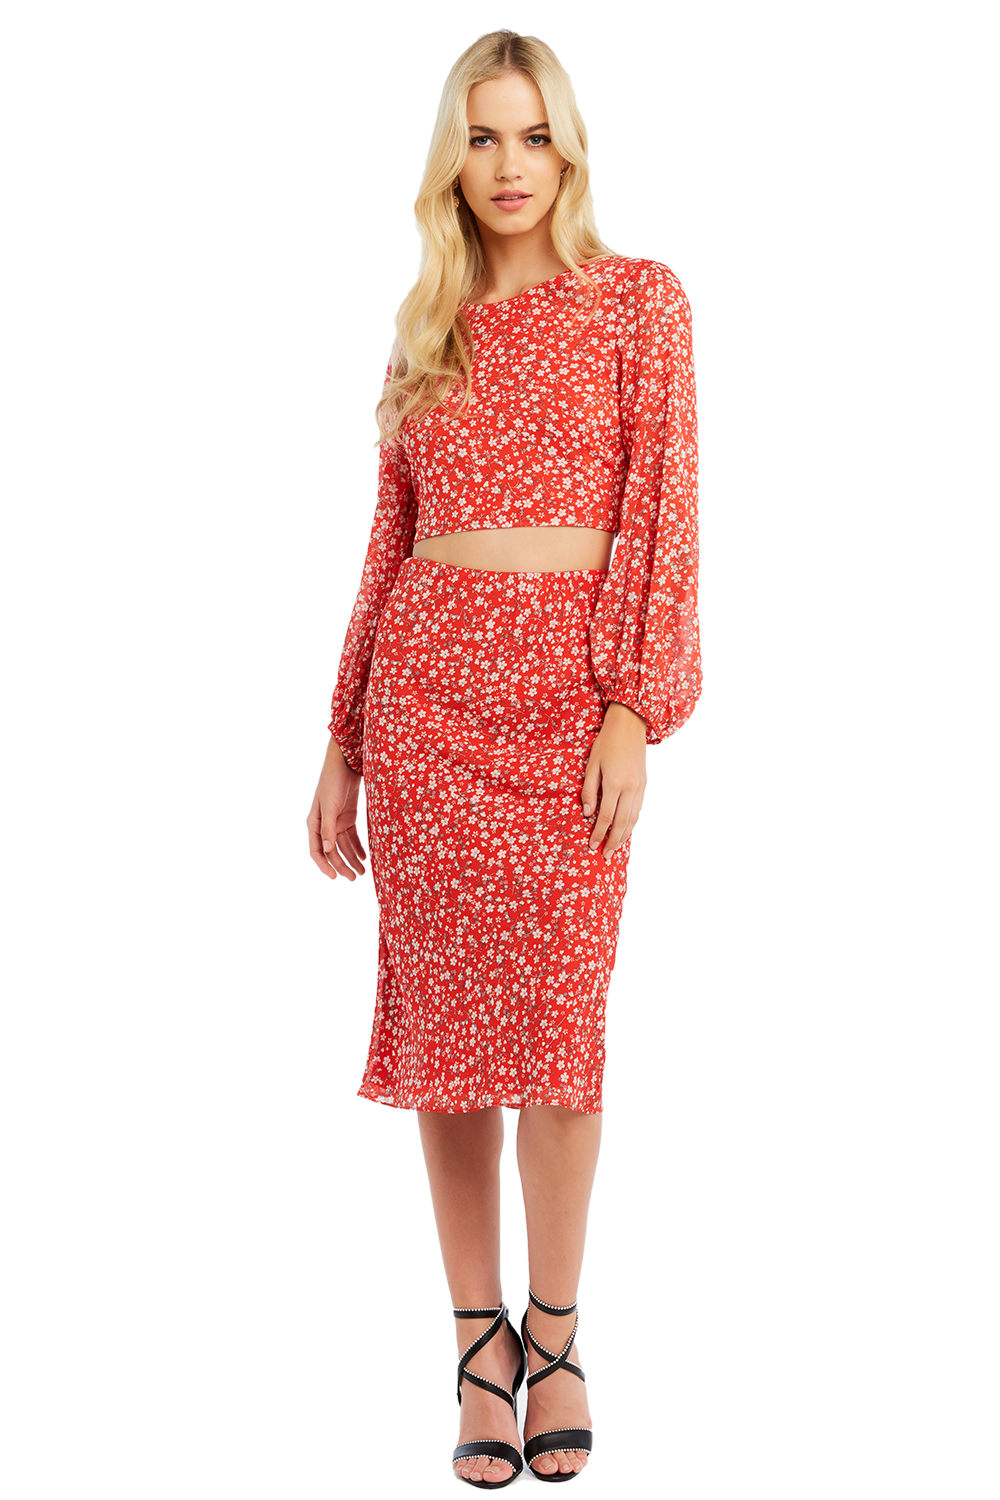 MAYAH BIAS MIDI SKIRT in colour TOMATO PUREE